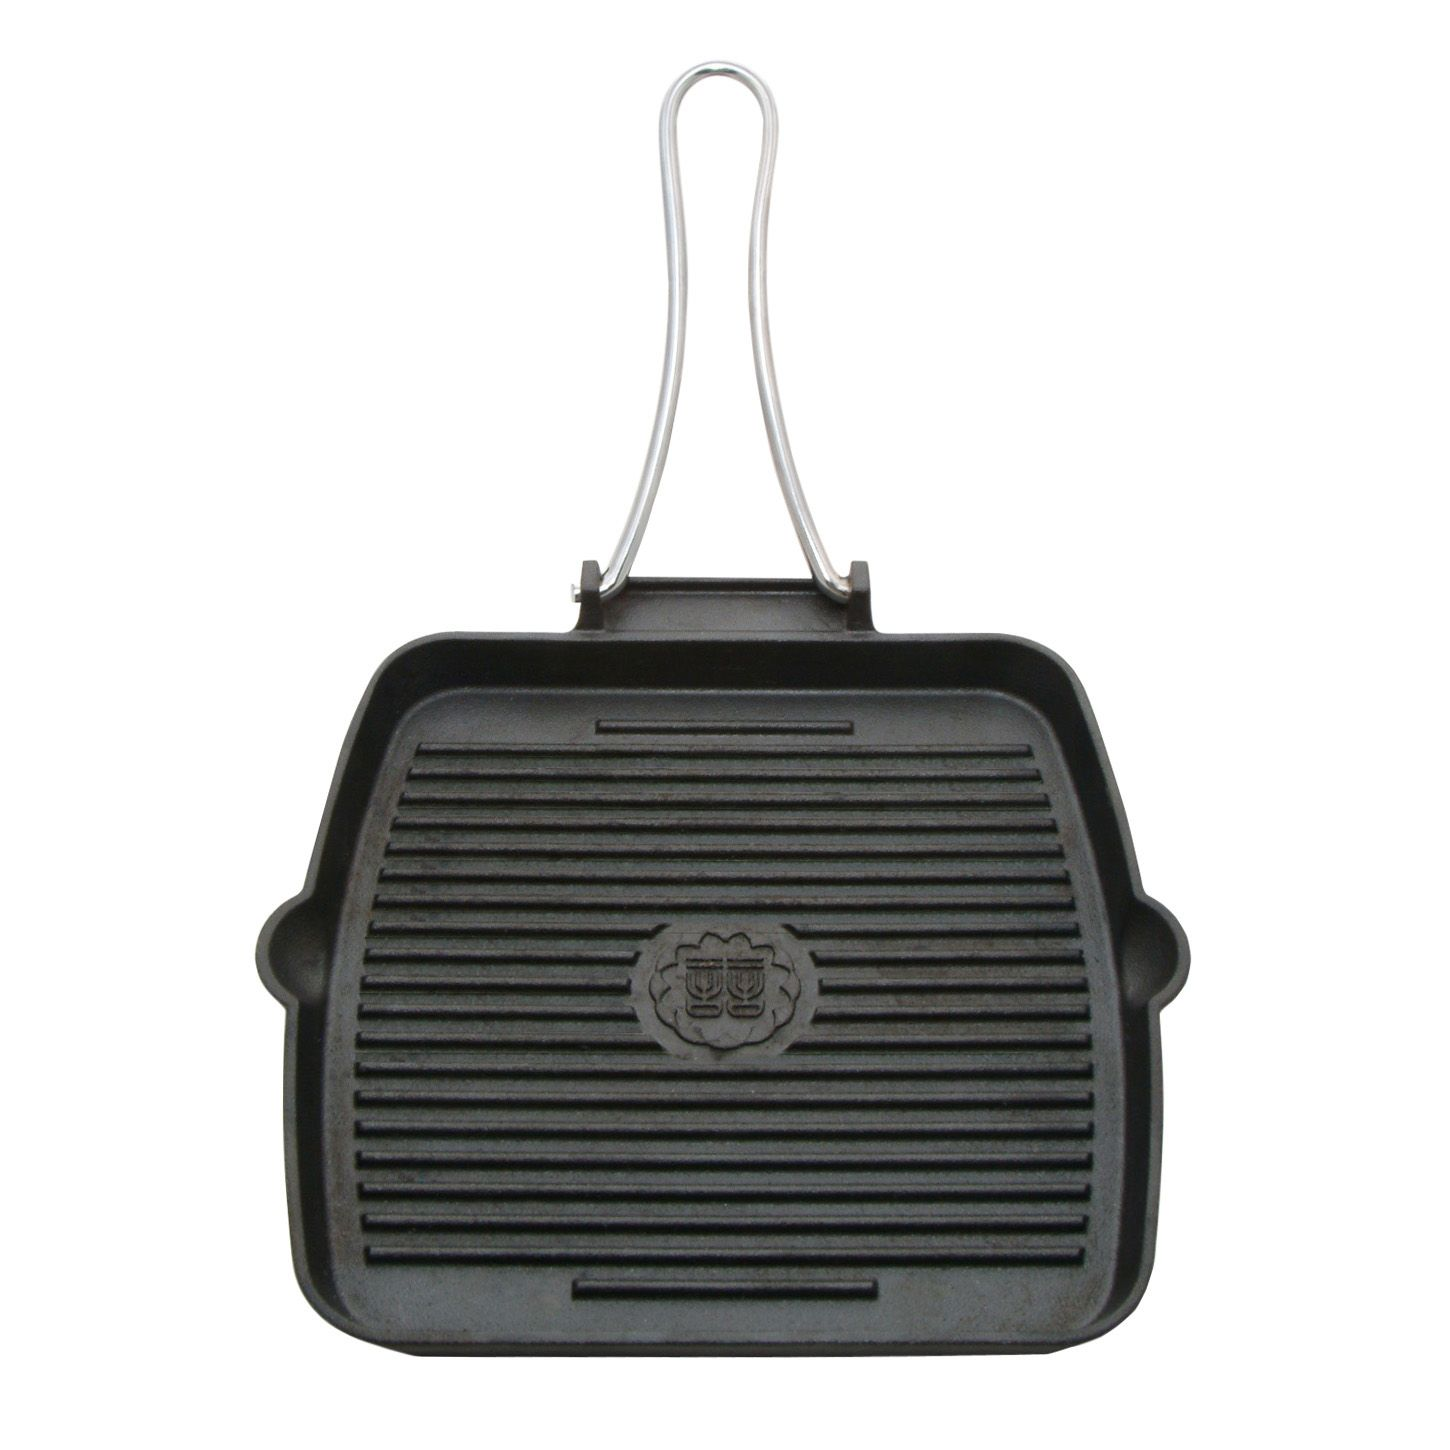 Square Charger with Folding Handle